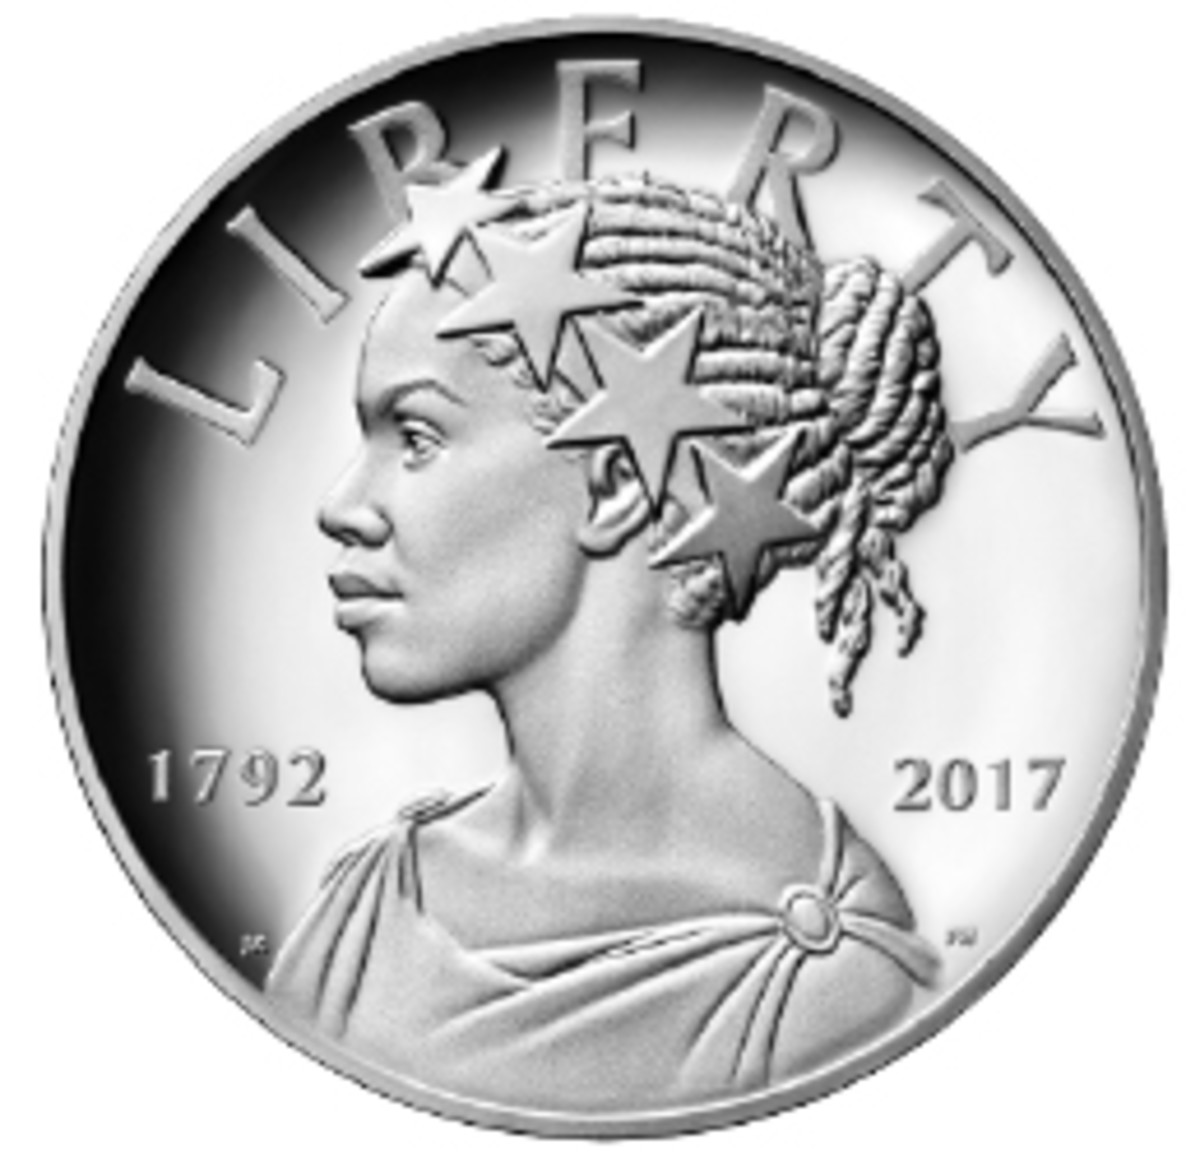 Common obverse design of the 225th anniversary medal set.